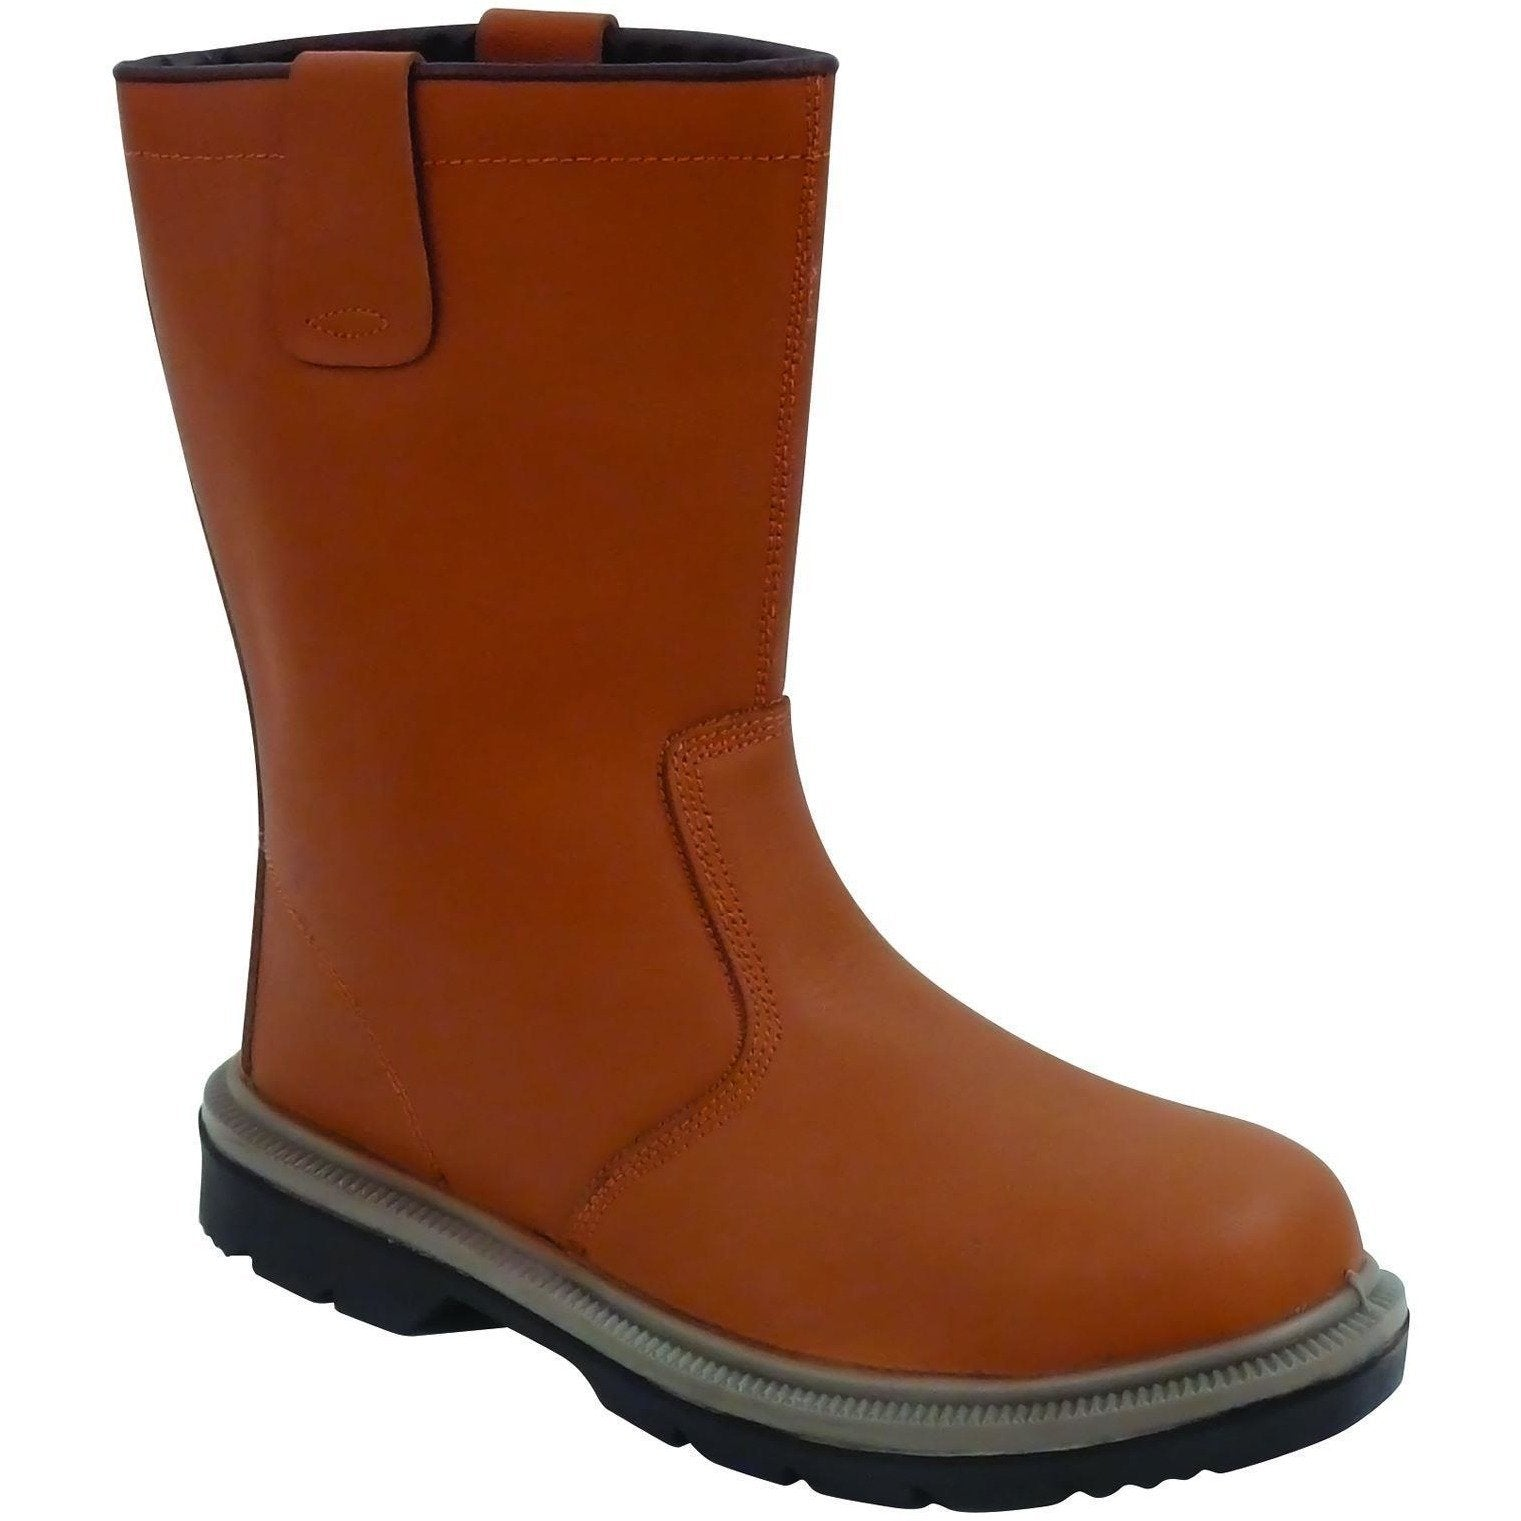 Portwest Steelite Rigger Boot S1P HRO (Unlined) FW06 - reid outdoors